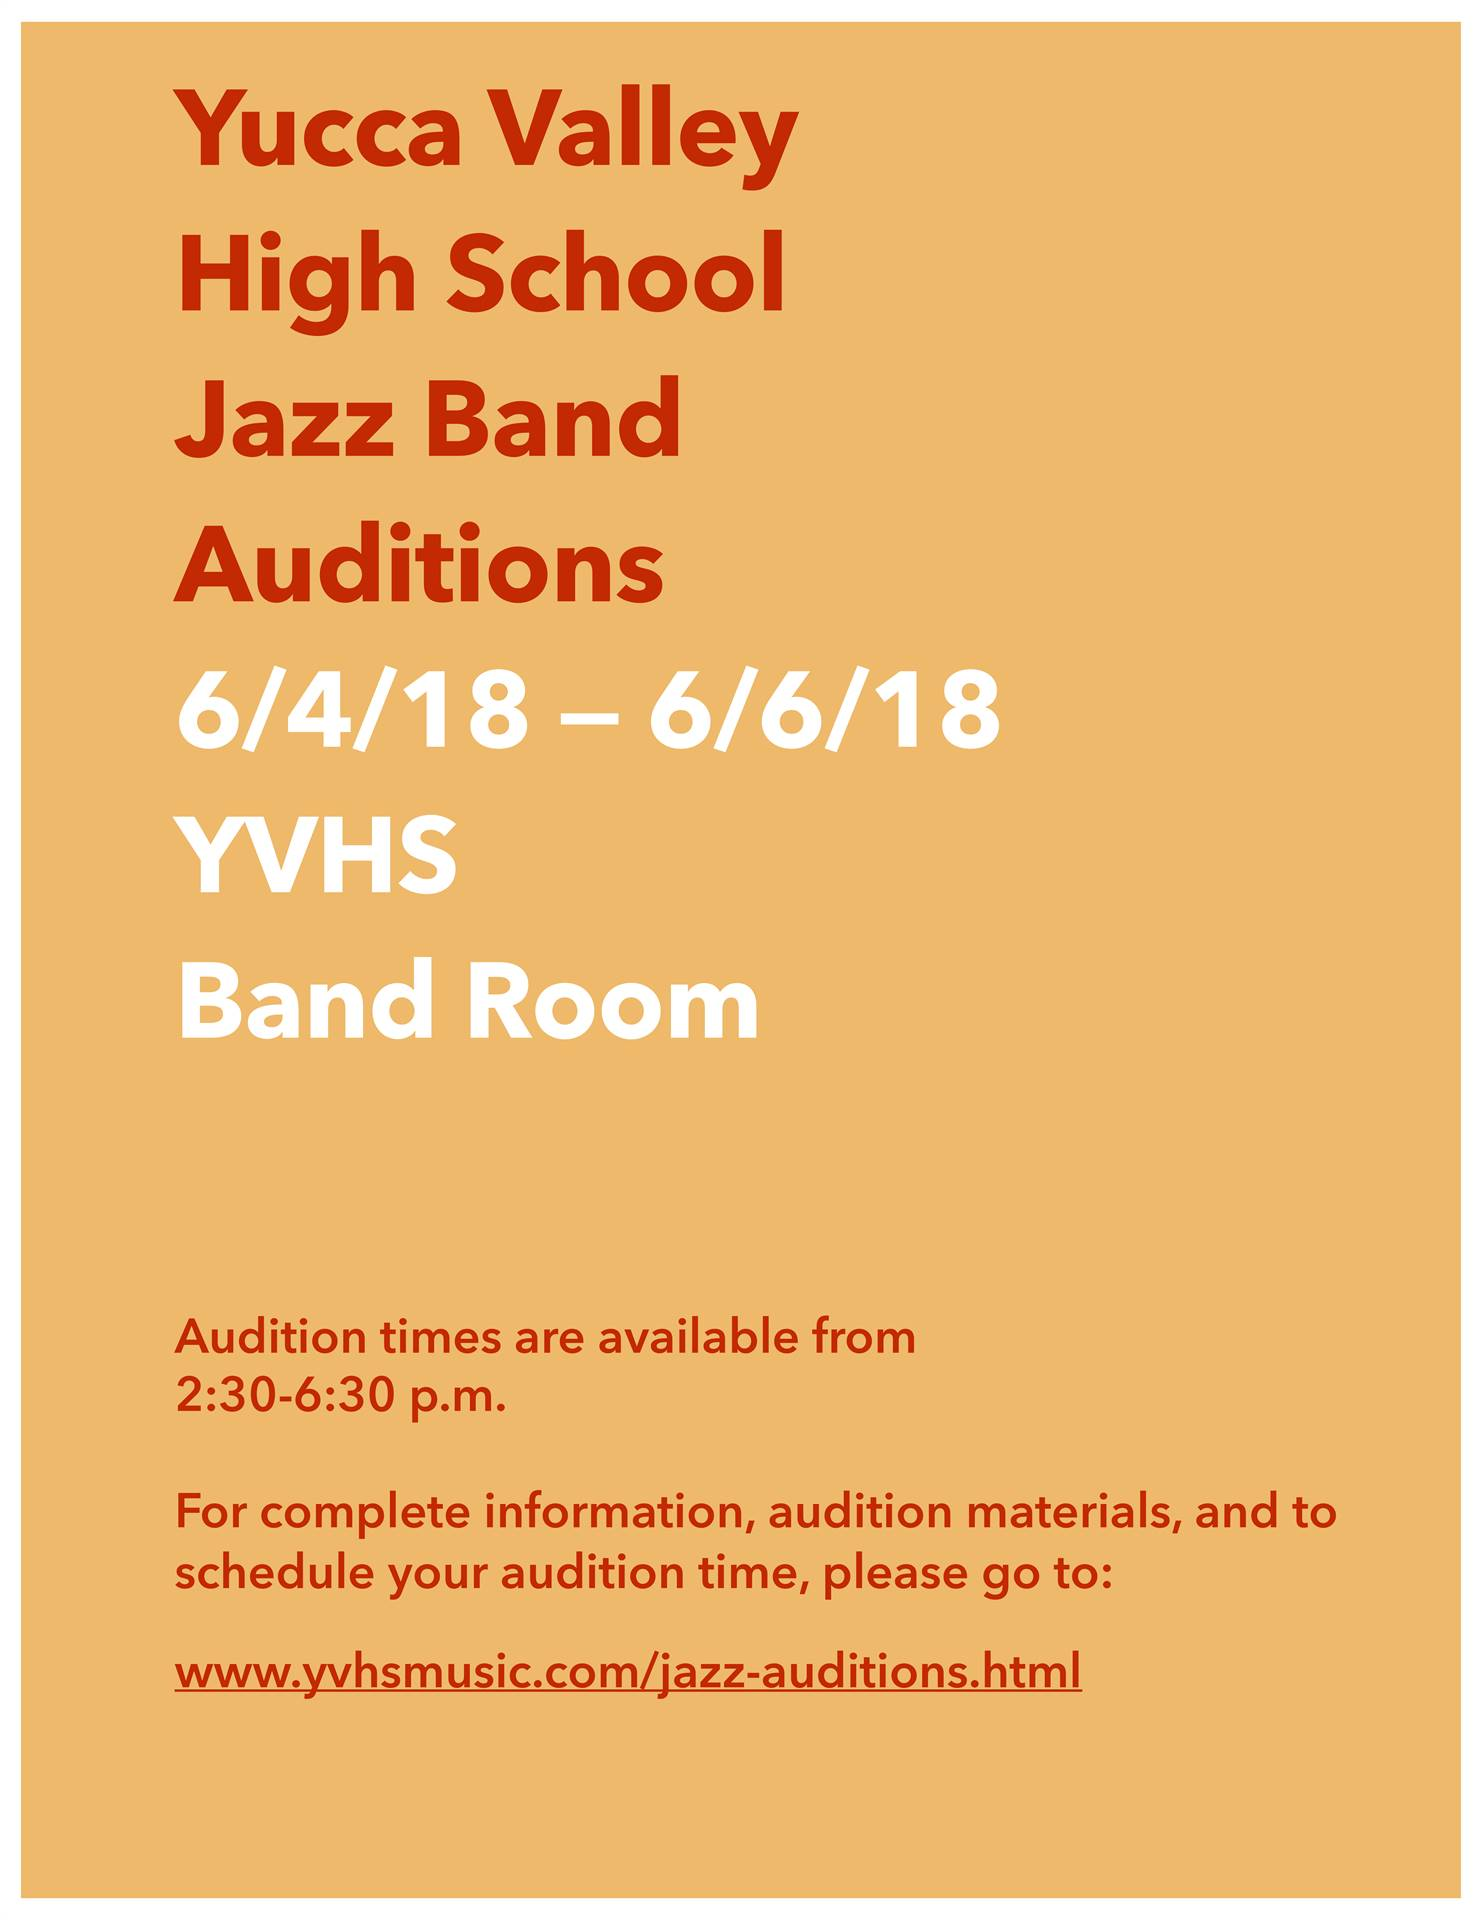 YVHS Jazz Band Audition Information